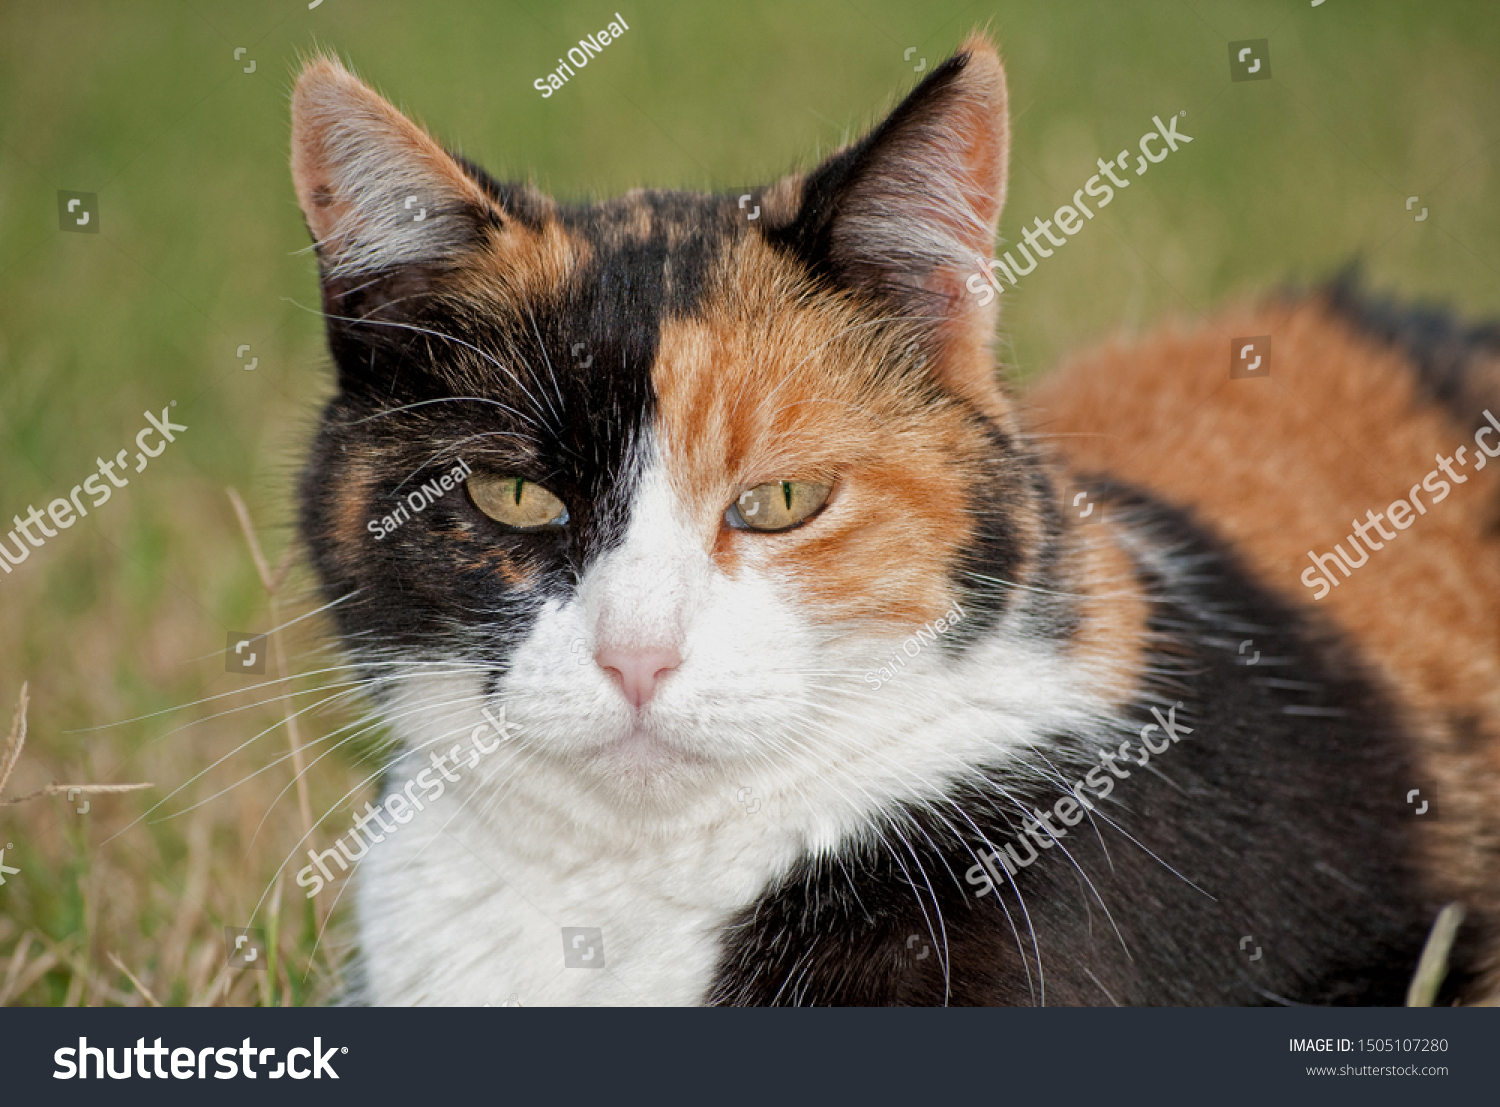 stock-photo-closeup-of-a-calico-cat-with